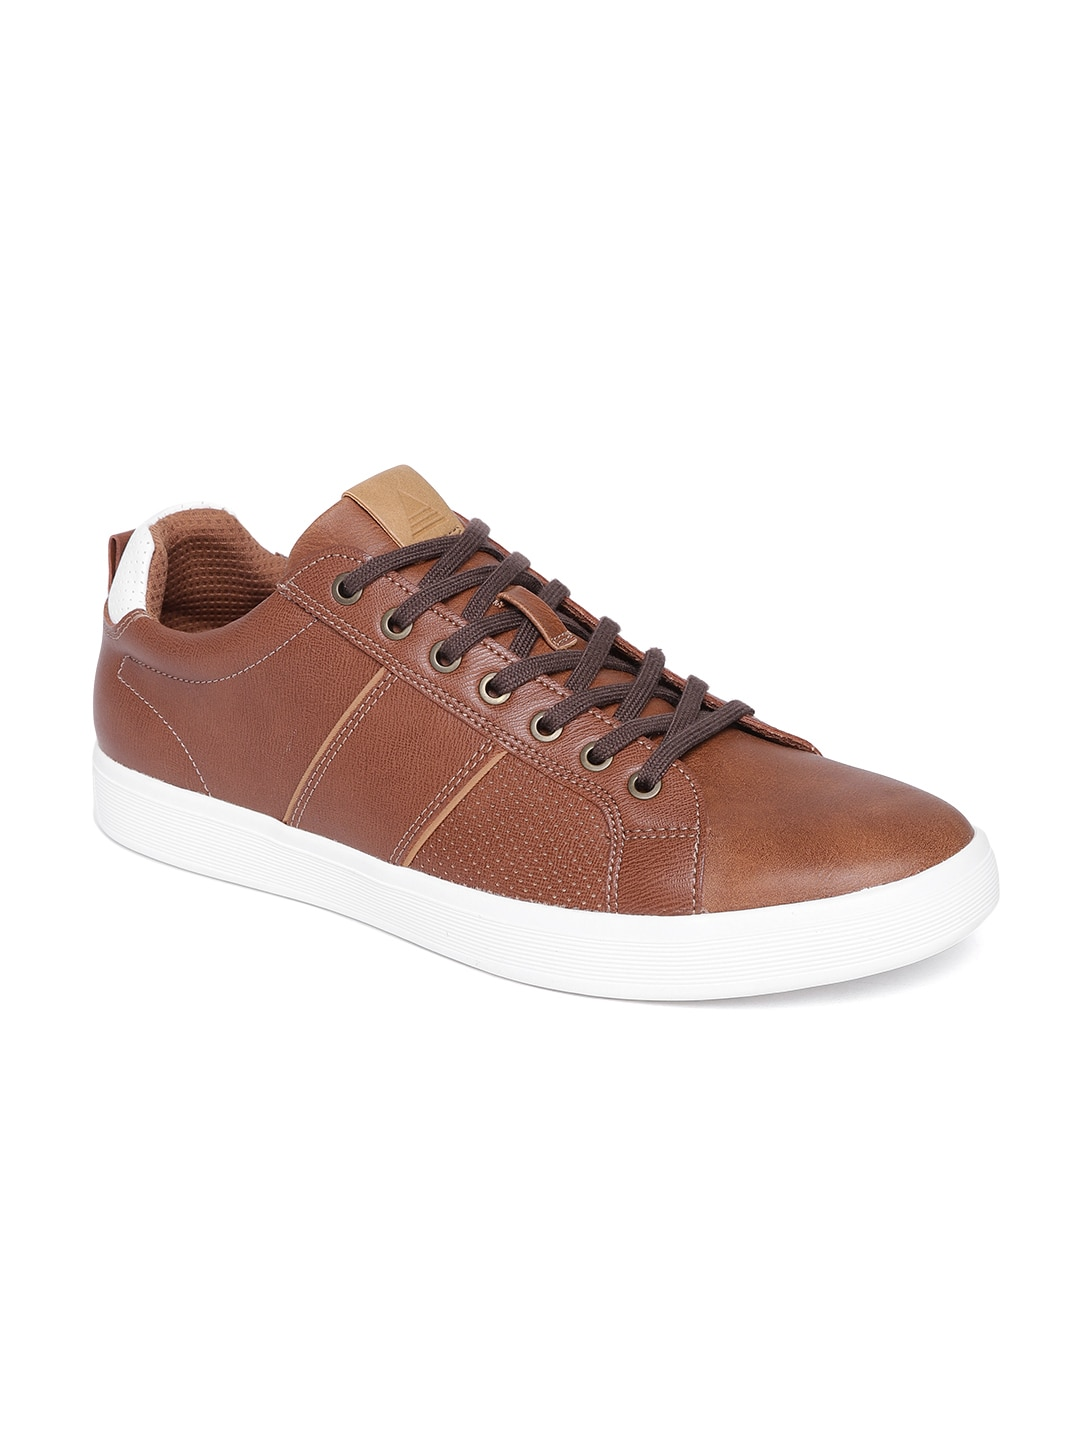 3afa1e0f8ad Casual Shoes For Men - Buy Casual   Flat Shoes For Men